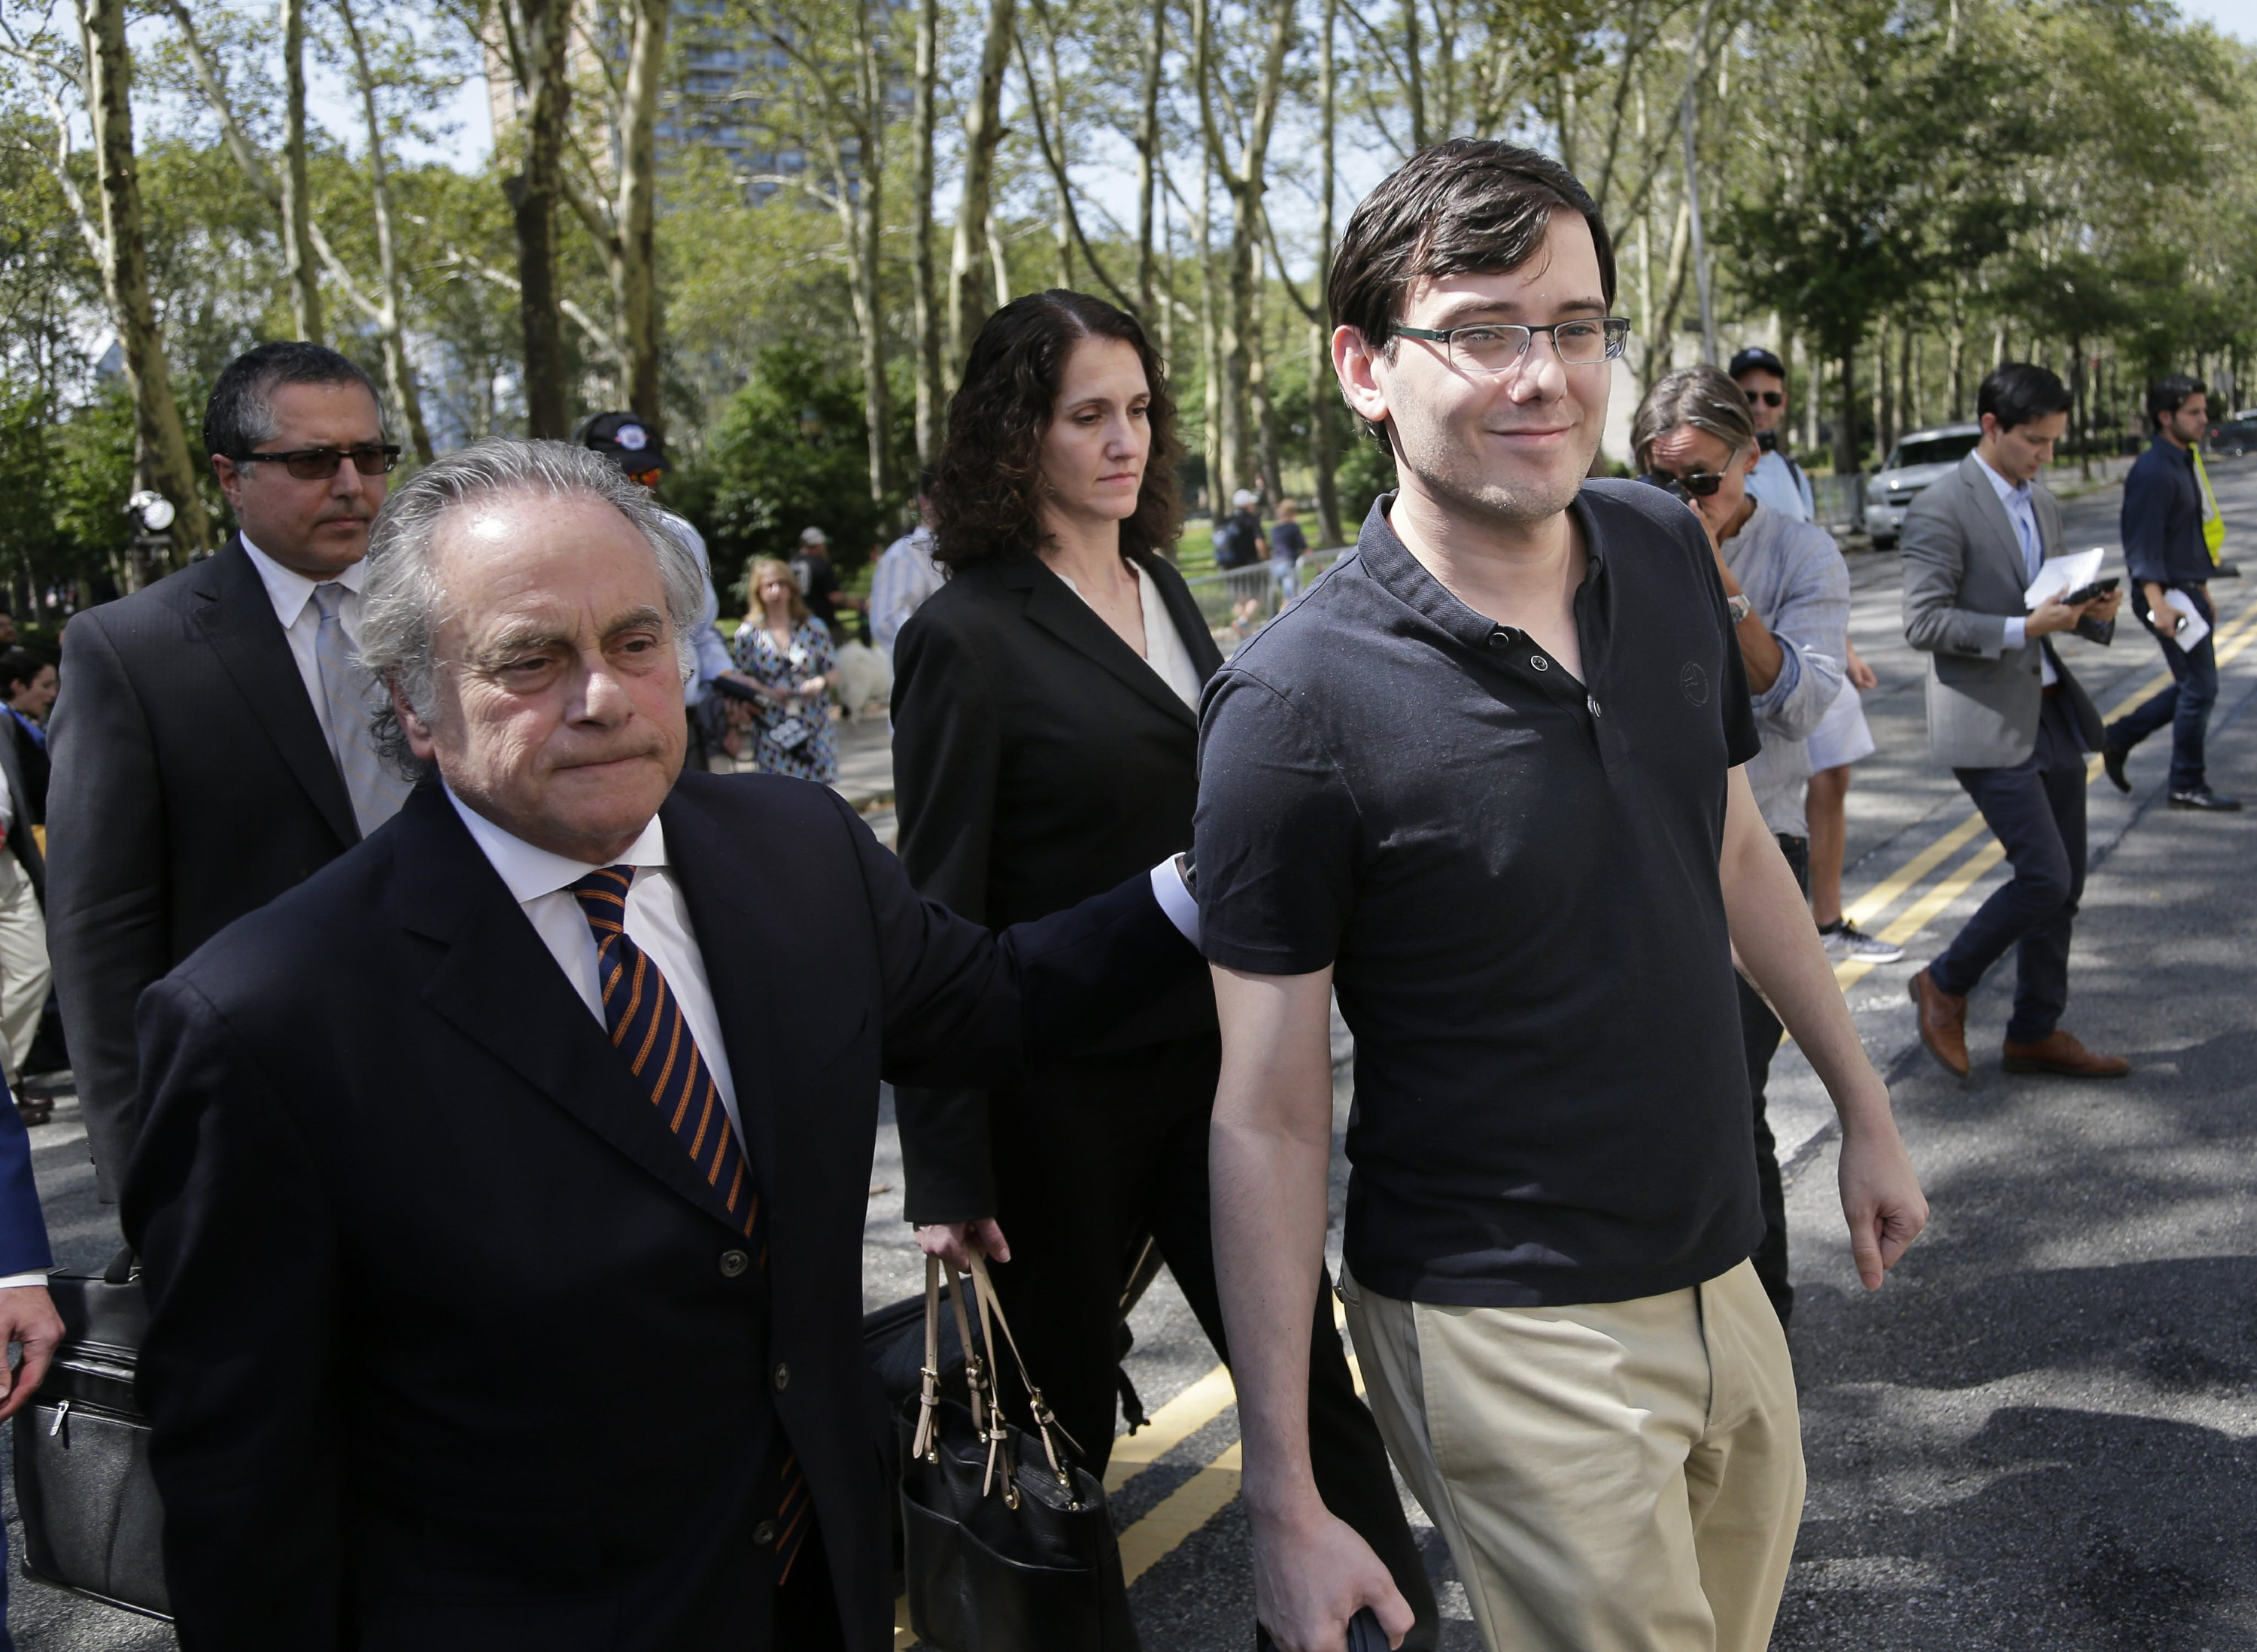 Convicted 'Pharma Bro' has an image problem, lawyer concedes